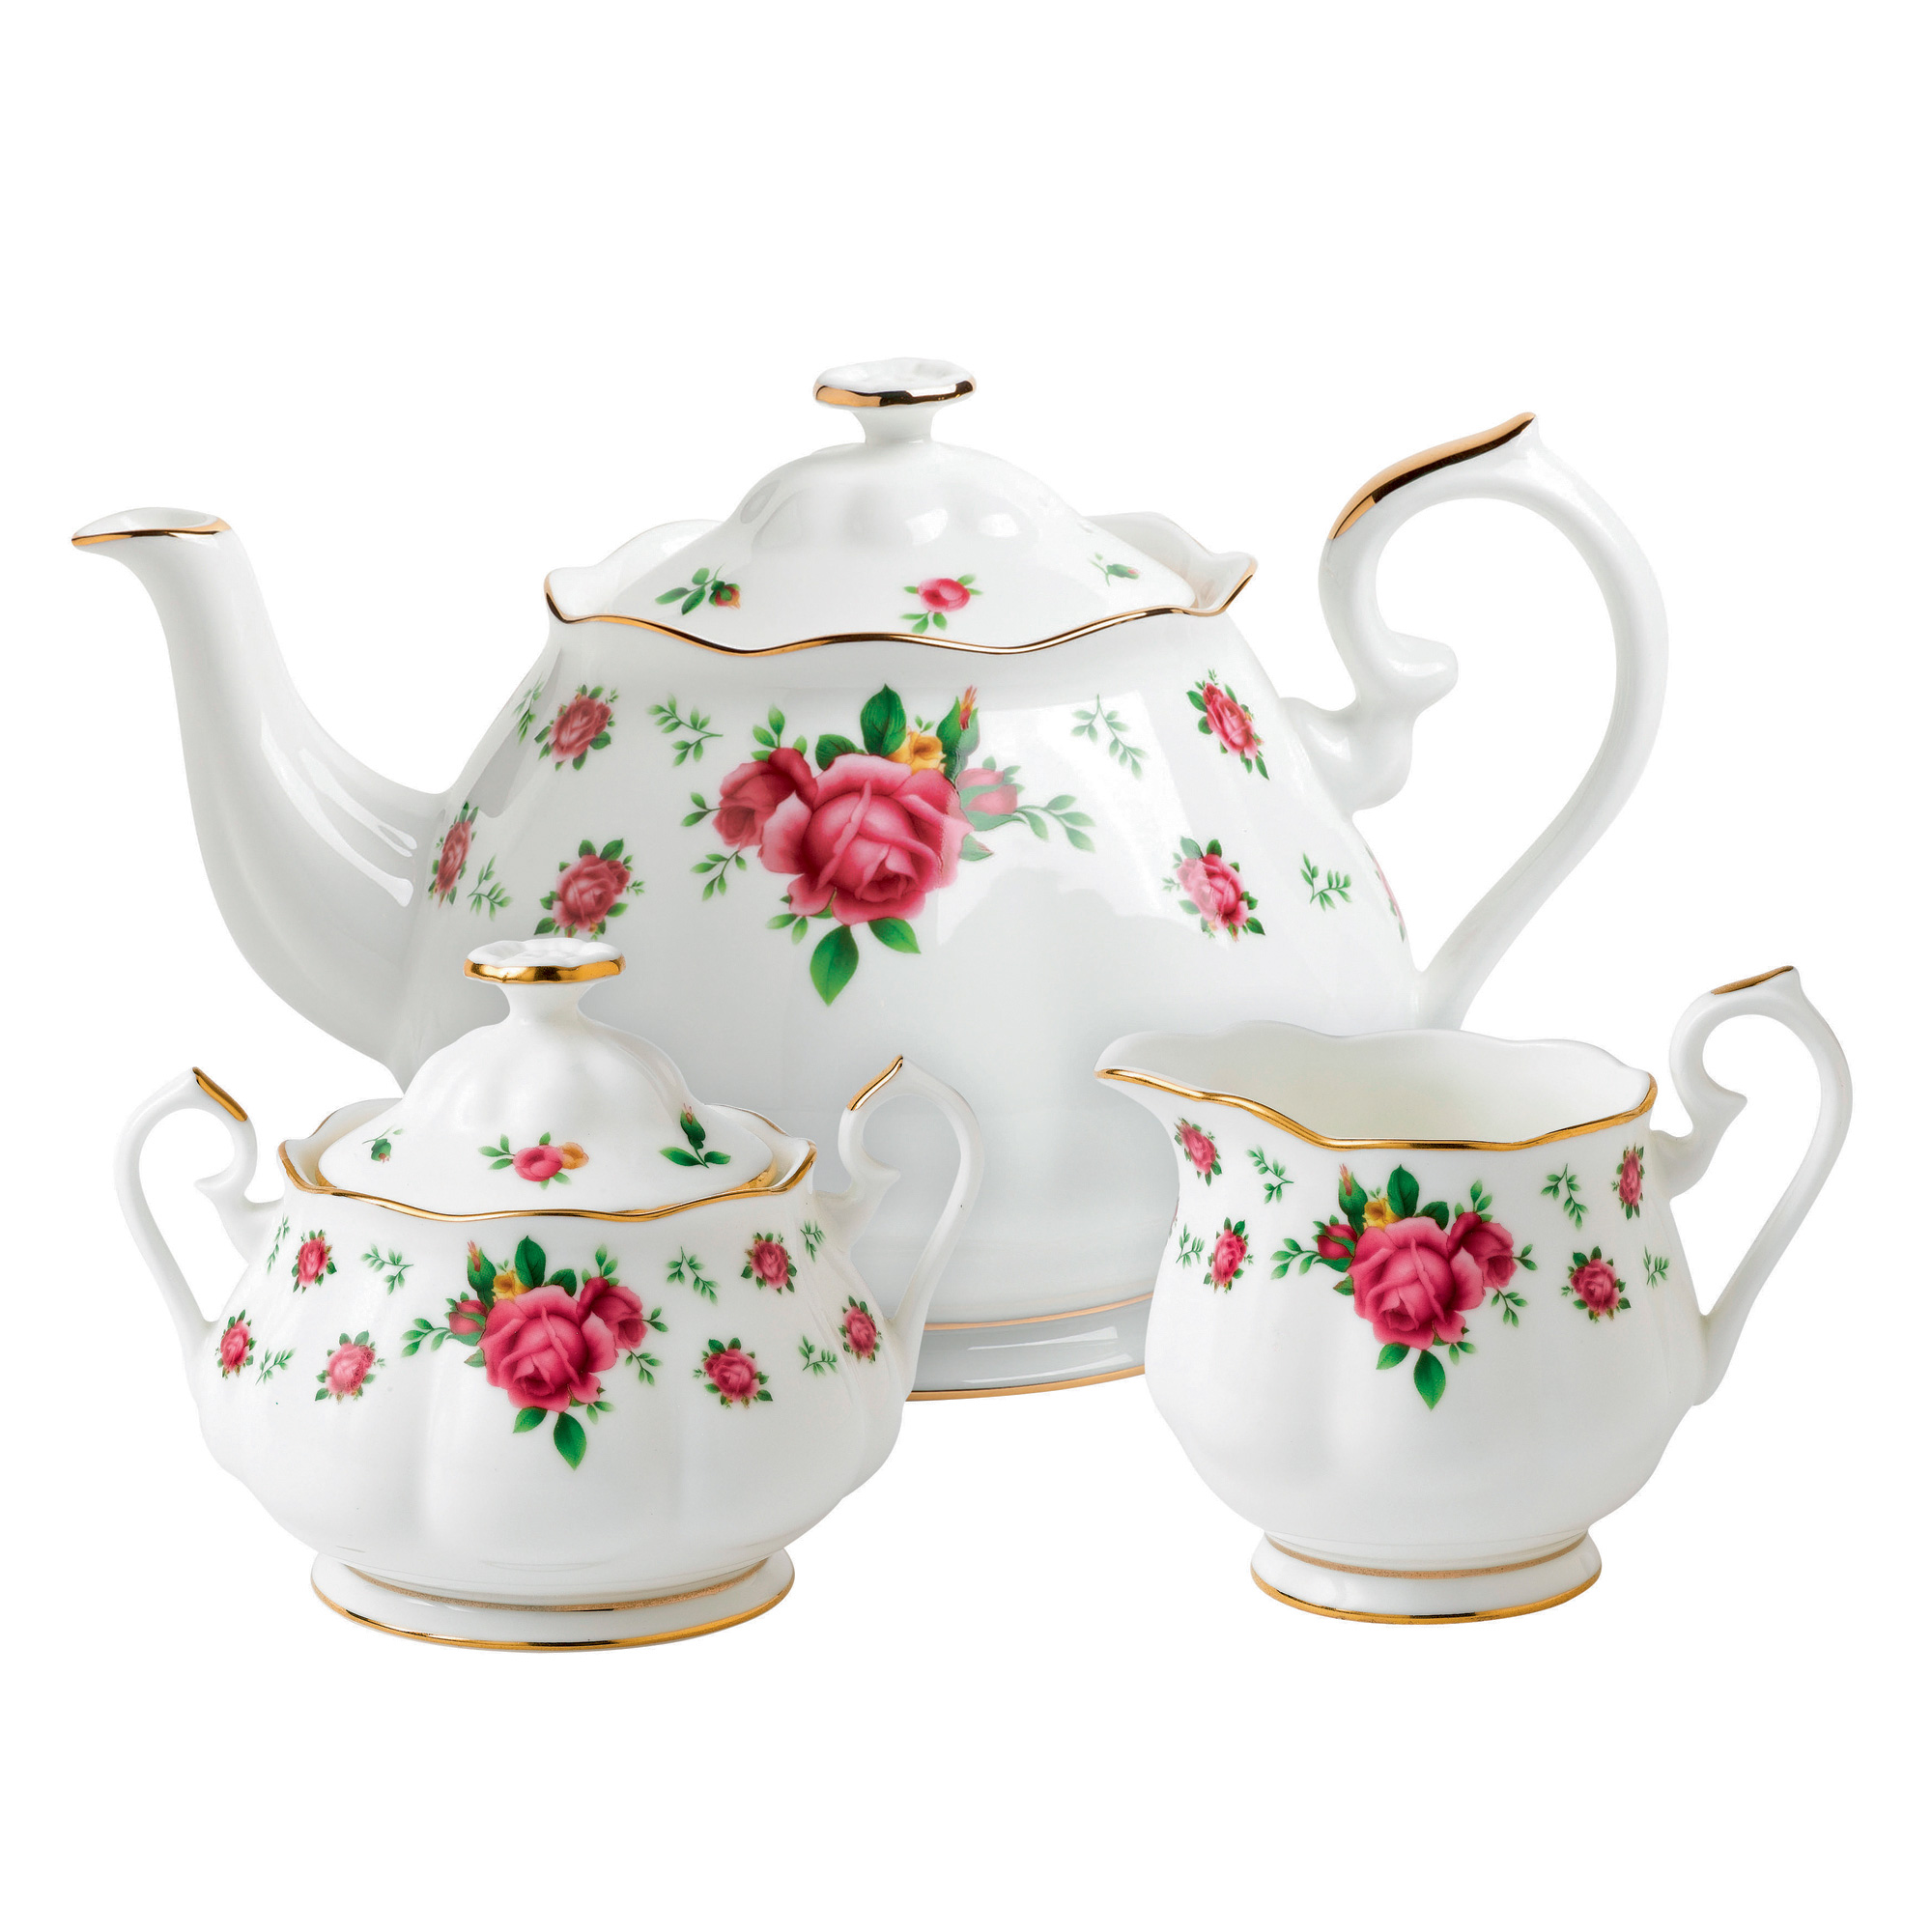 New Country Roses 3pc Teapot, Sugar and Creamer Set (White)